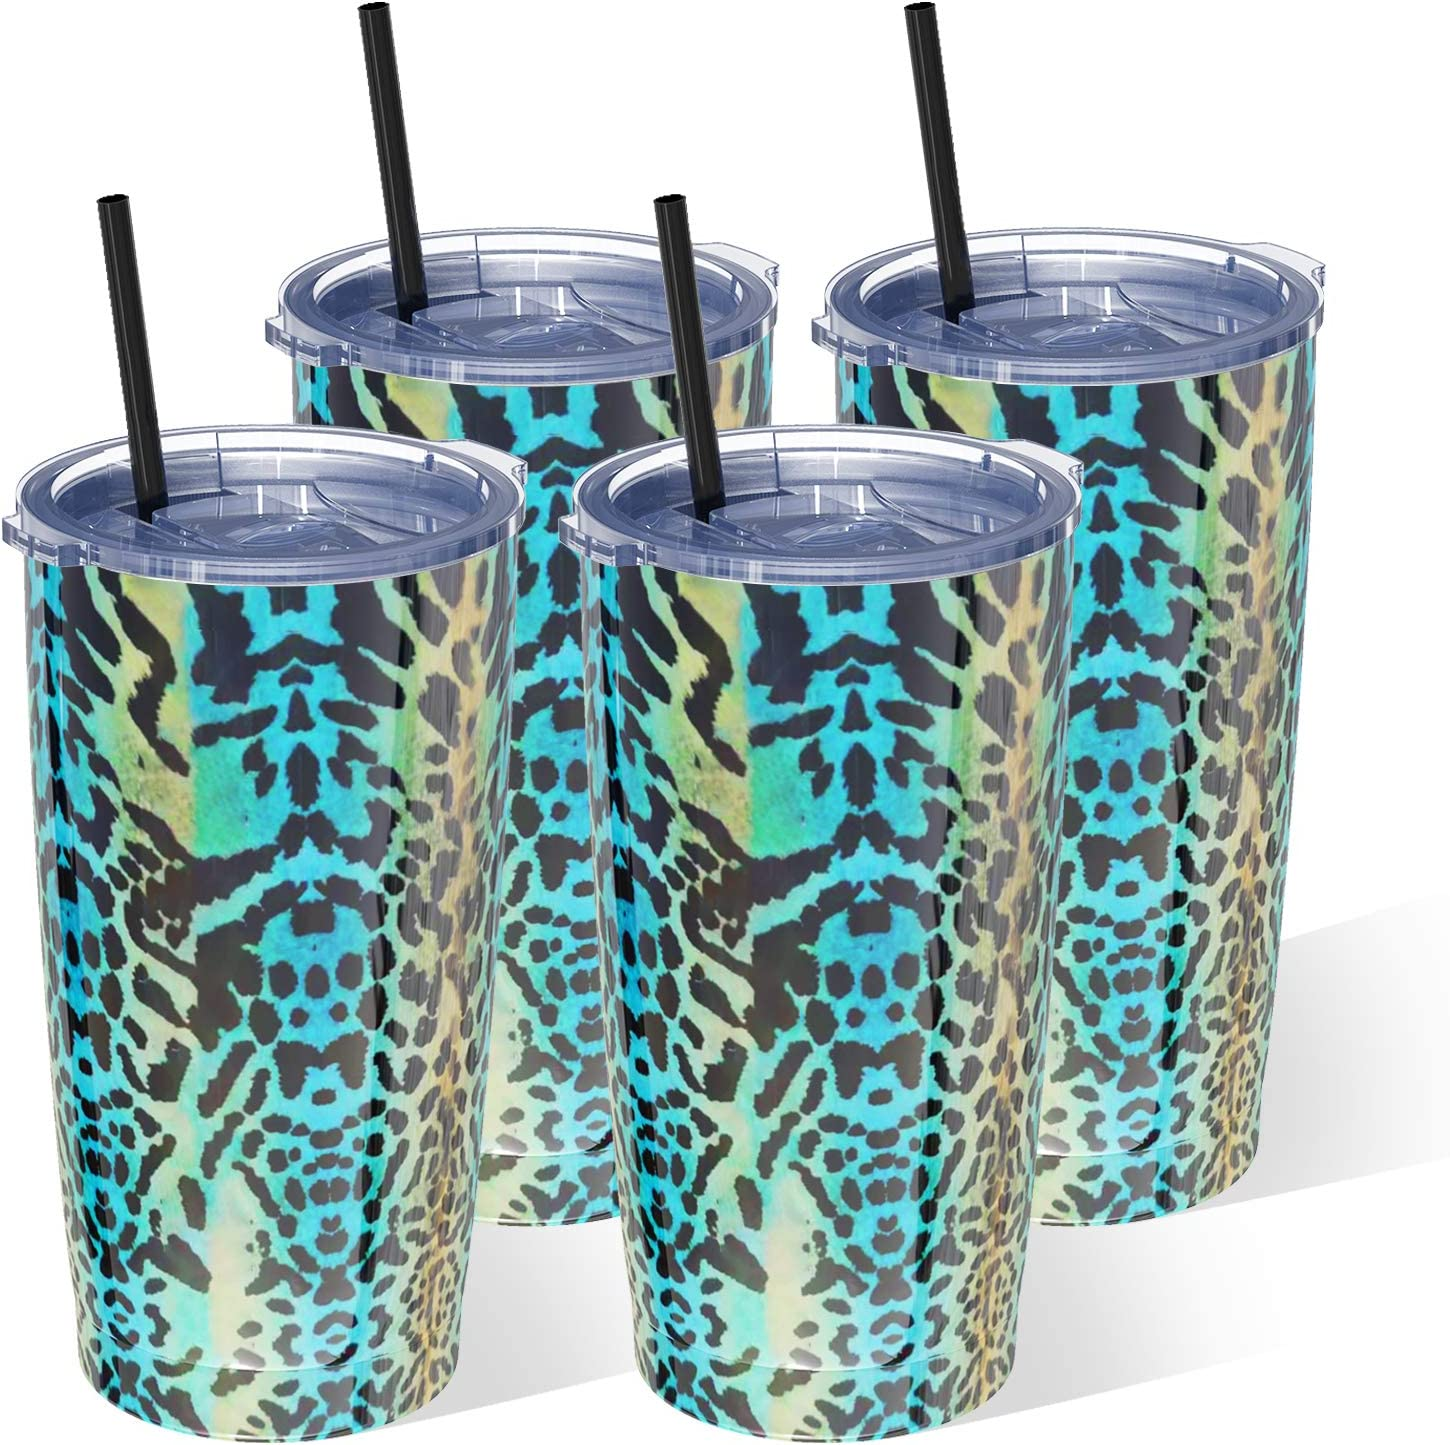 Bastwe 20oz Insulated Tumbler OFFicial store with Lid Steel Straw Shipping included Stainless